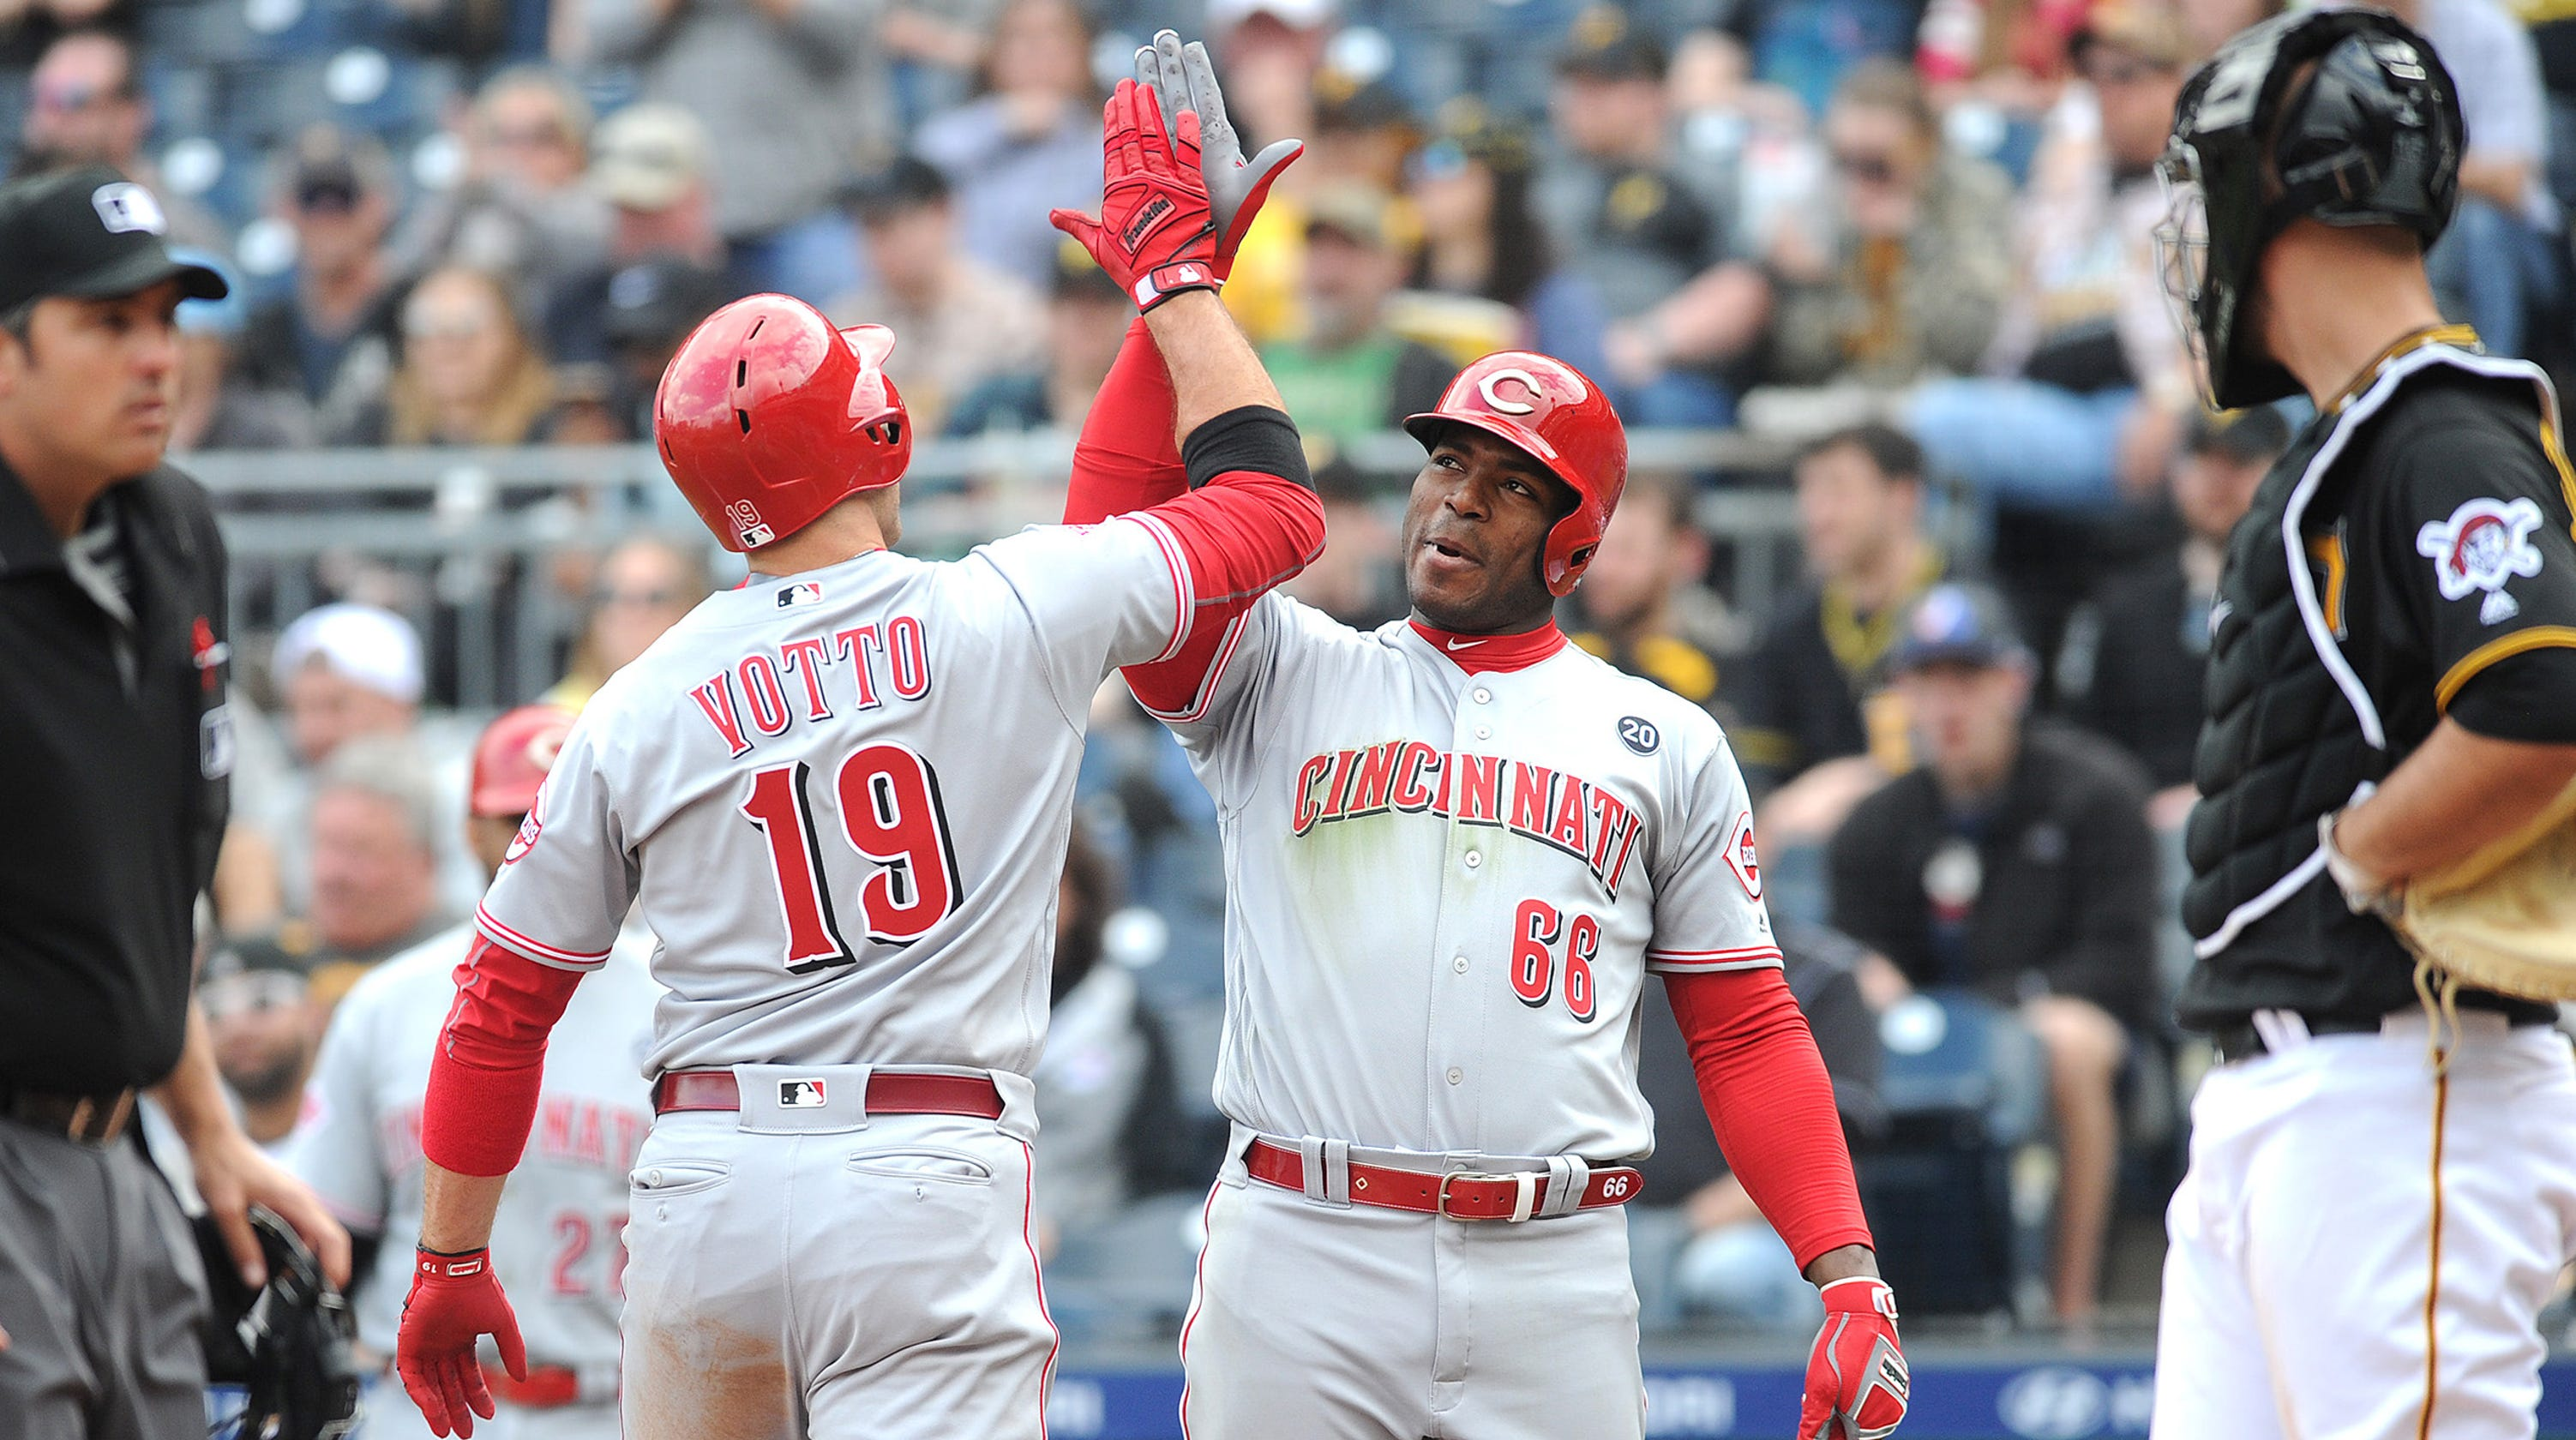 Yasiel Puig On Reds Joey Votto Hes The Best Guy Ive Ever Met